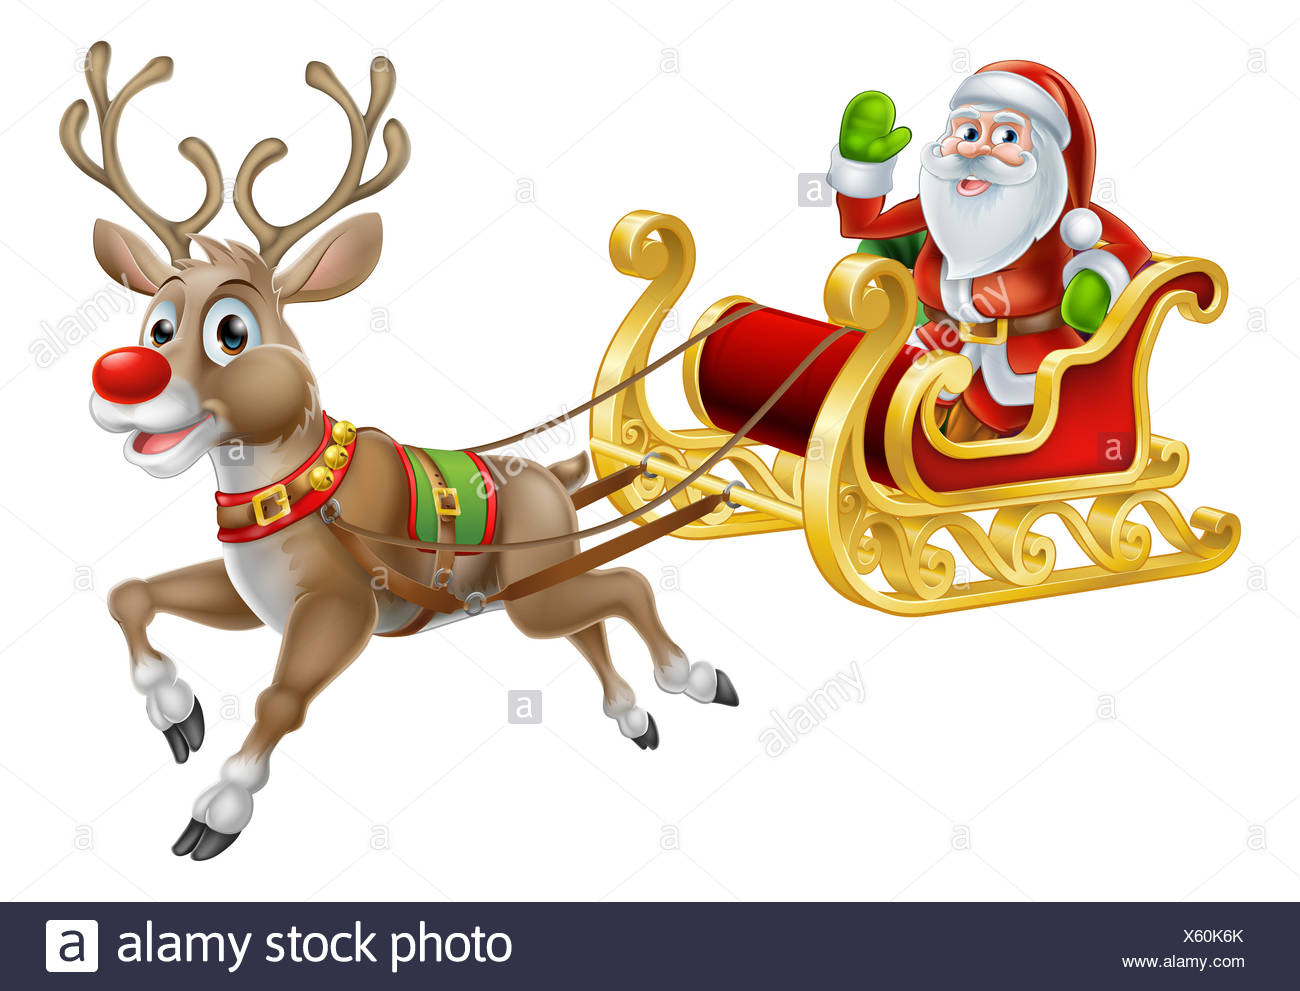 santa claus with his rein deers photos santa claus with. Black Bedroom Furniture Sets. Home Design Ideas